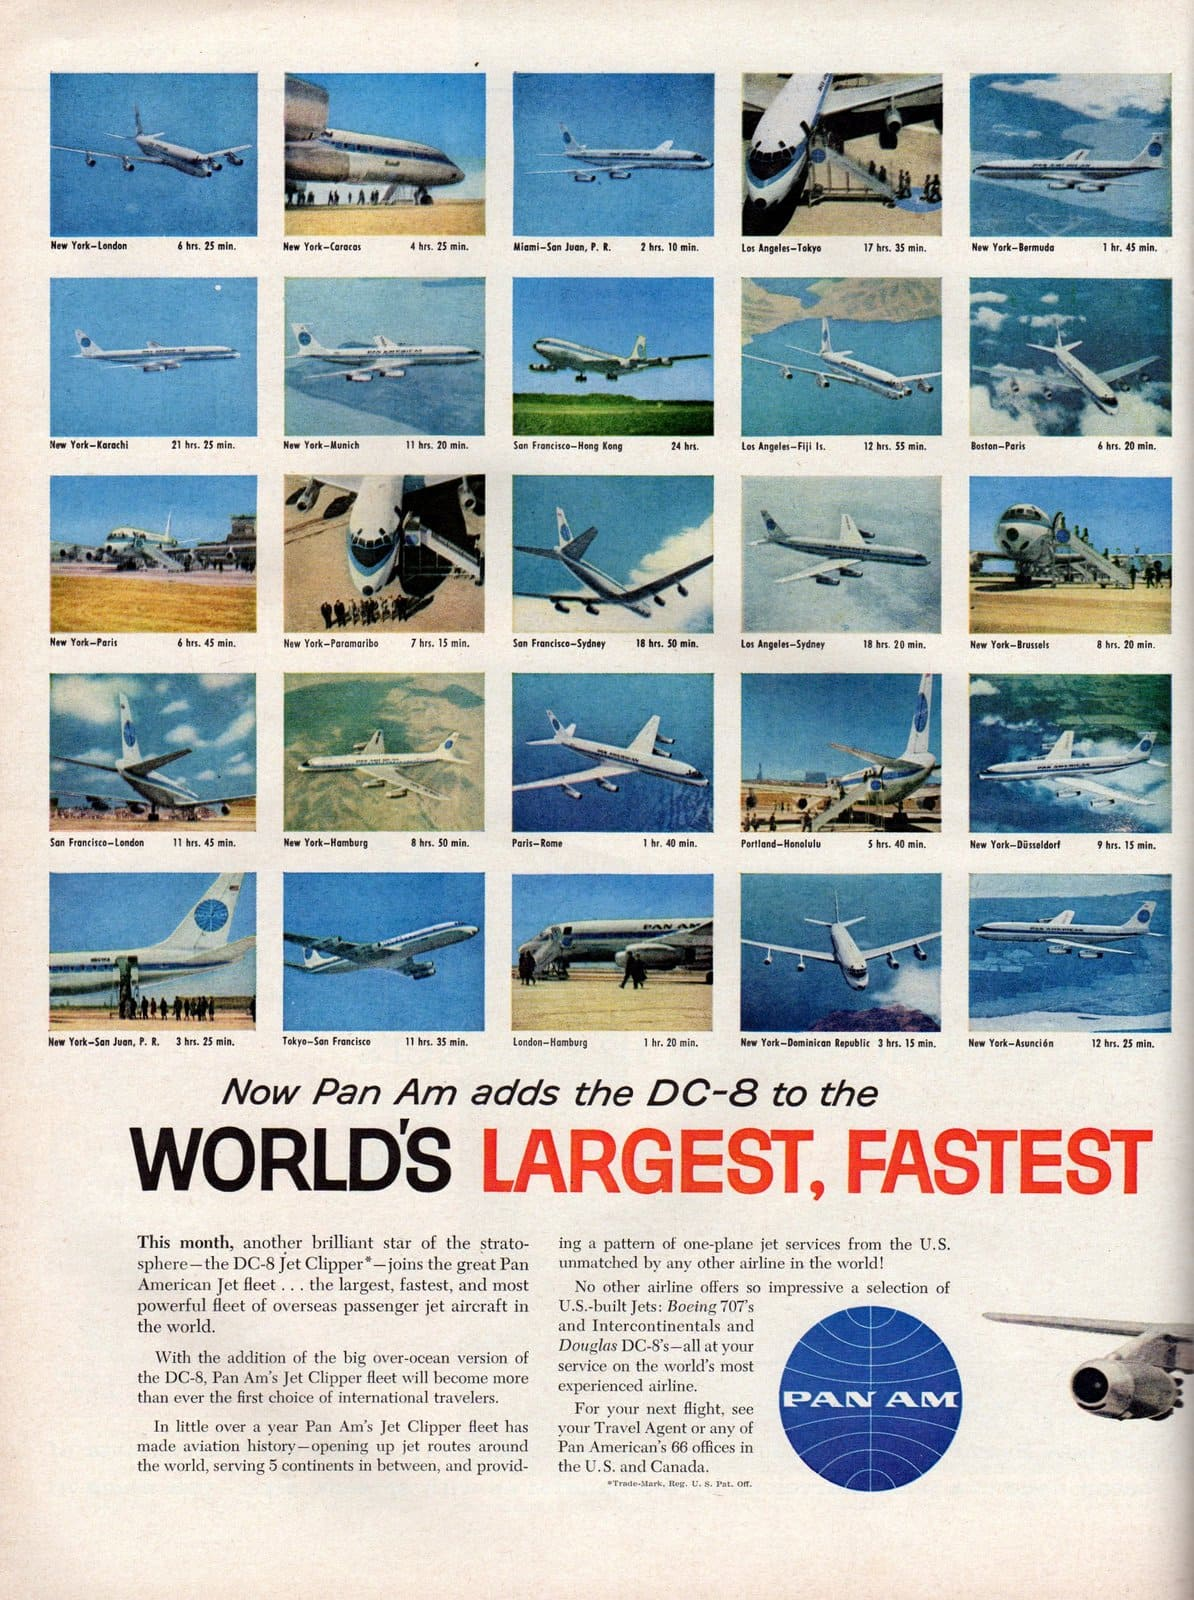 Pan Am adds DC-8 to their over-ocean jet fleet 1960 (1)